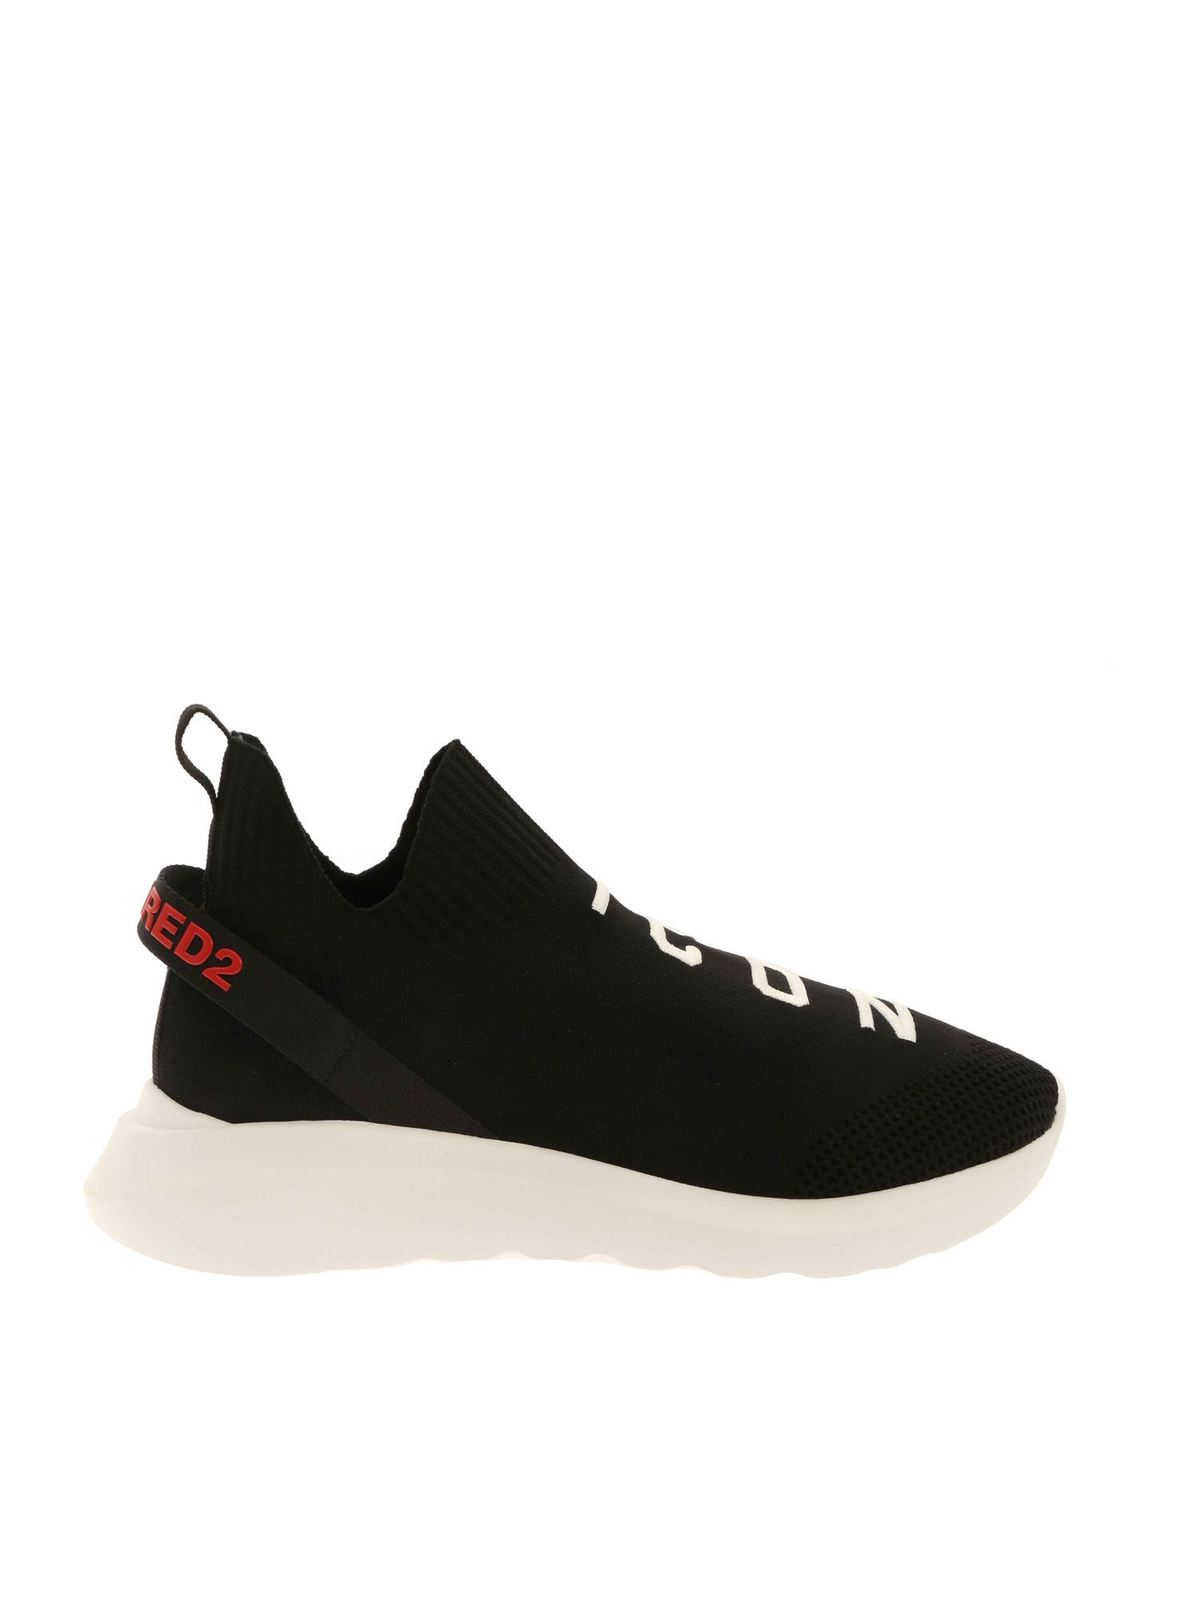 Dsquared2 Shoes ICON EMBROIDERY SNEAKERS IN BLACK